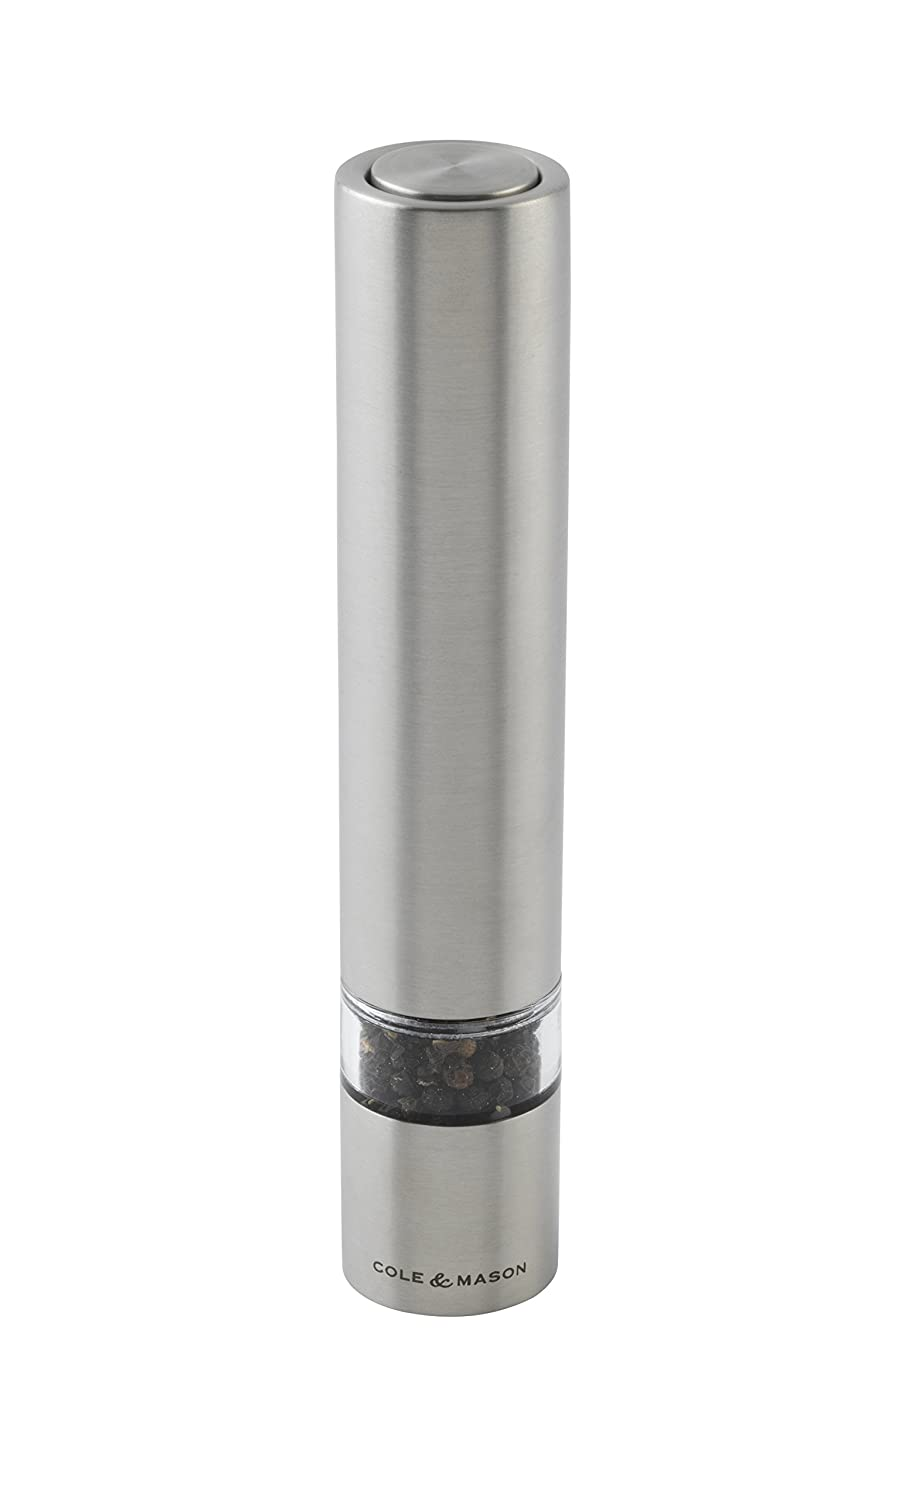 Cole & Mason Electronic Chiswick Salt or Pepper Mill, Stainless Steel/Silver, 17.5 cm DKB Household H3056410